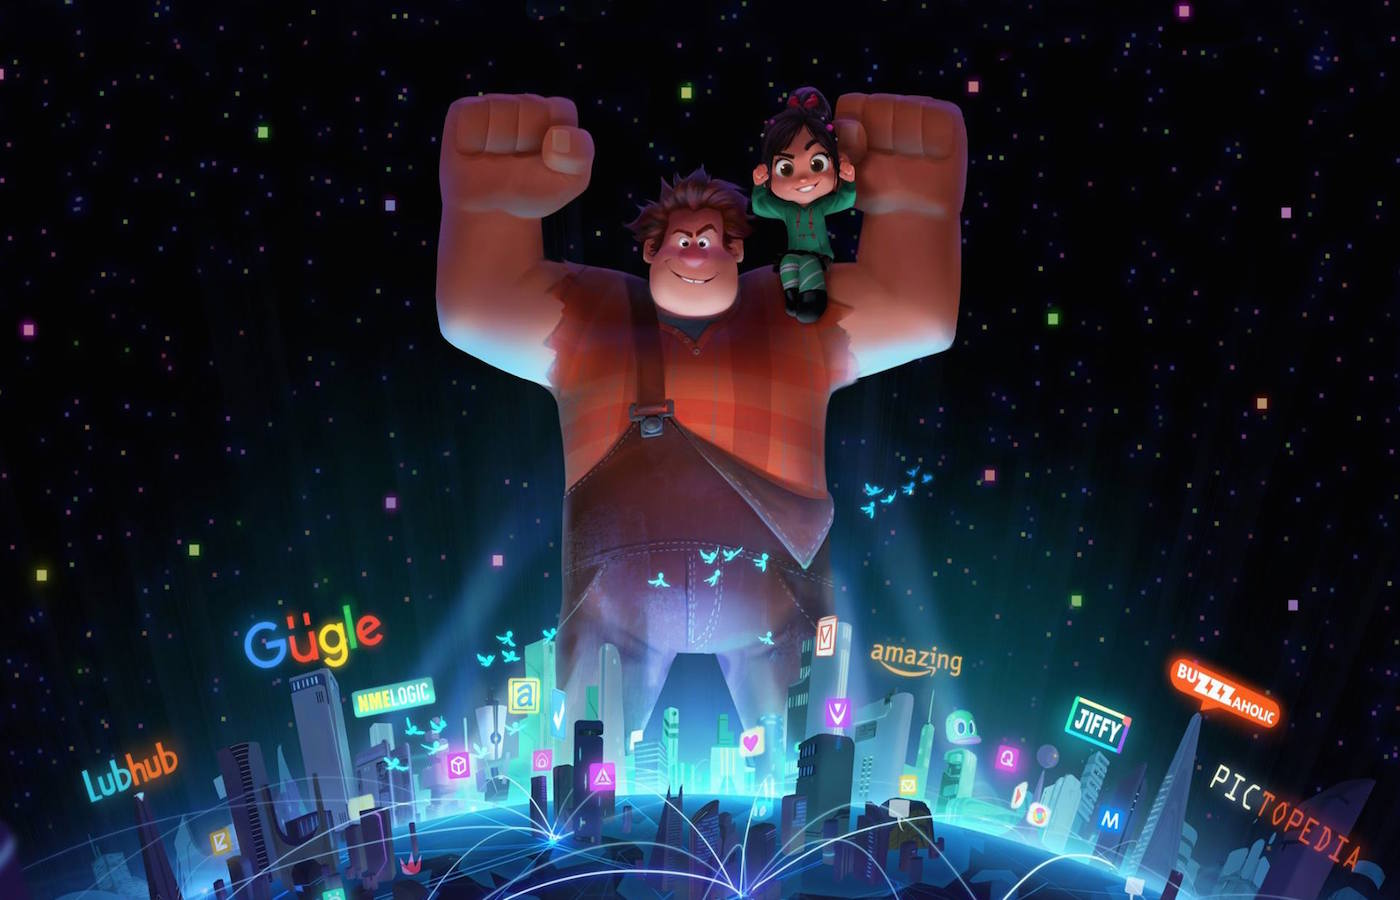 Wreck it ralph 2 image1